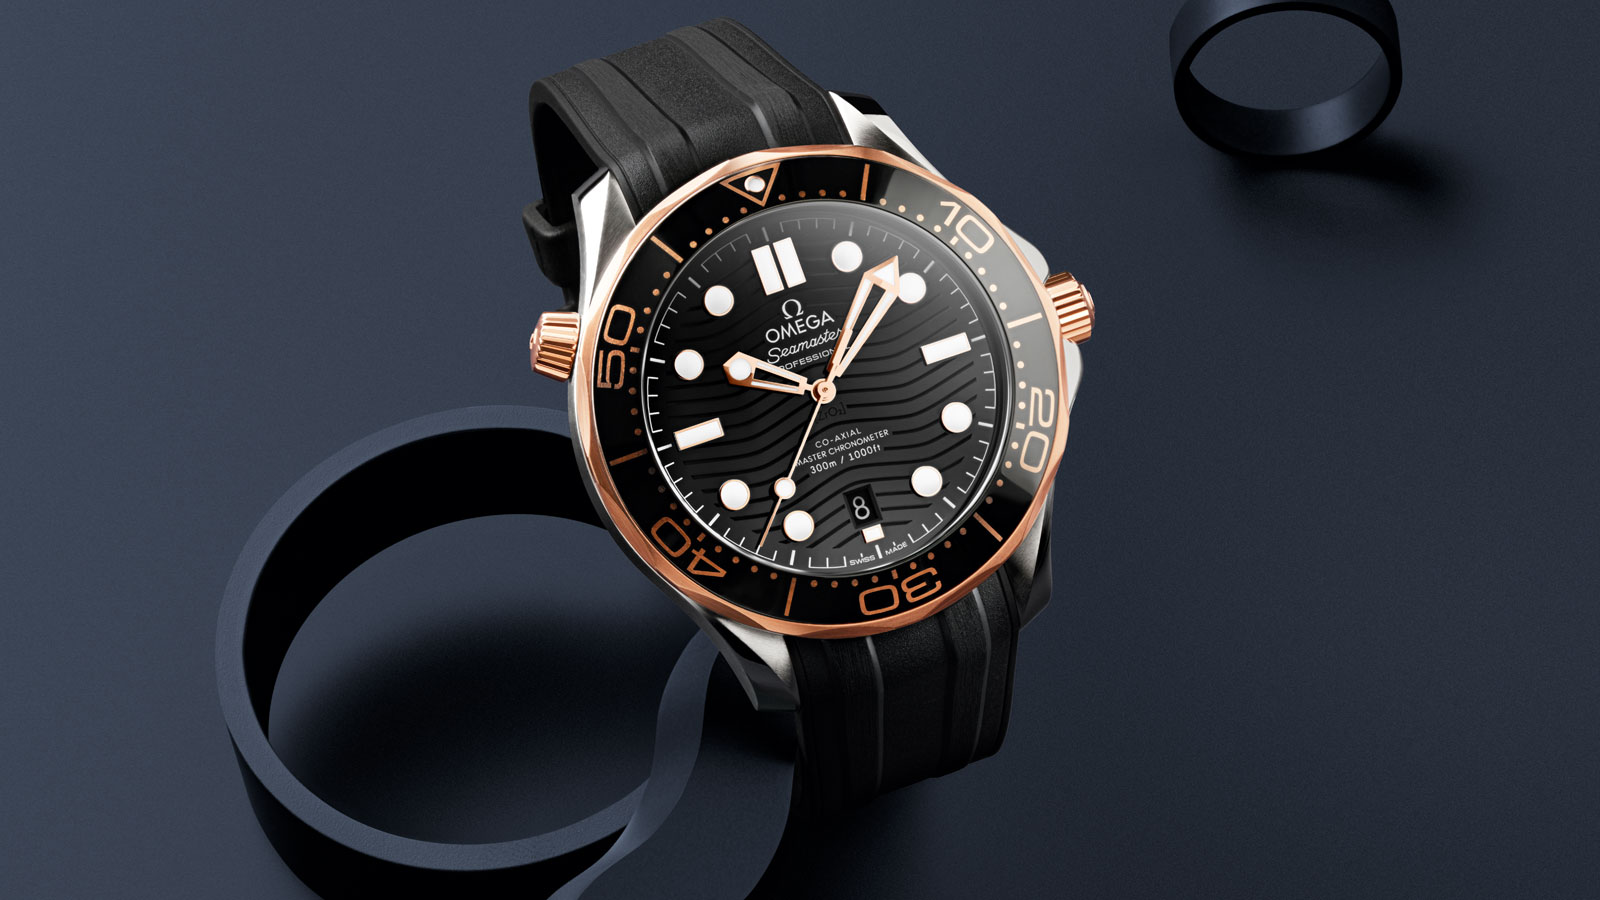 Seamaster Diver 300 M Diver 300M Omega Co‑Axial Master Chronometer 42 mm - 210.22.42.20.01.002 - View 1